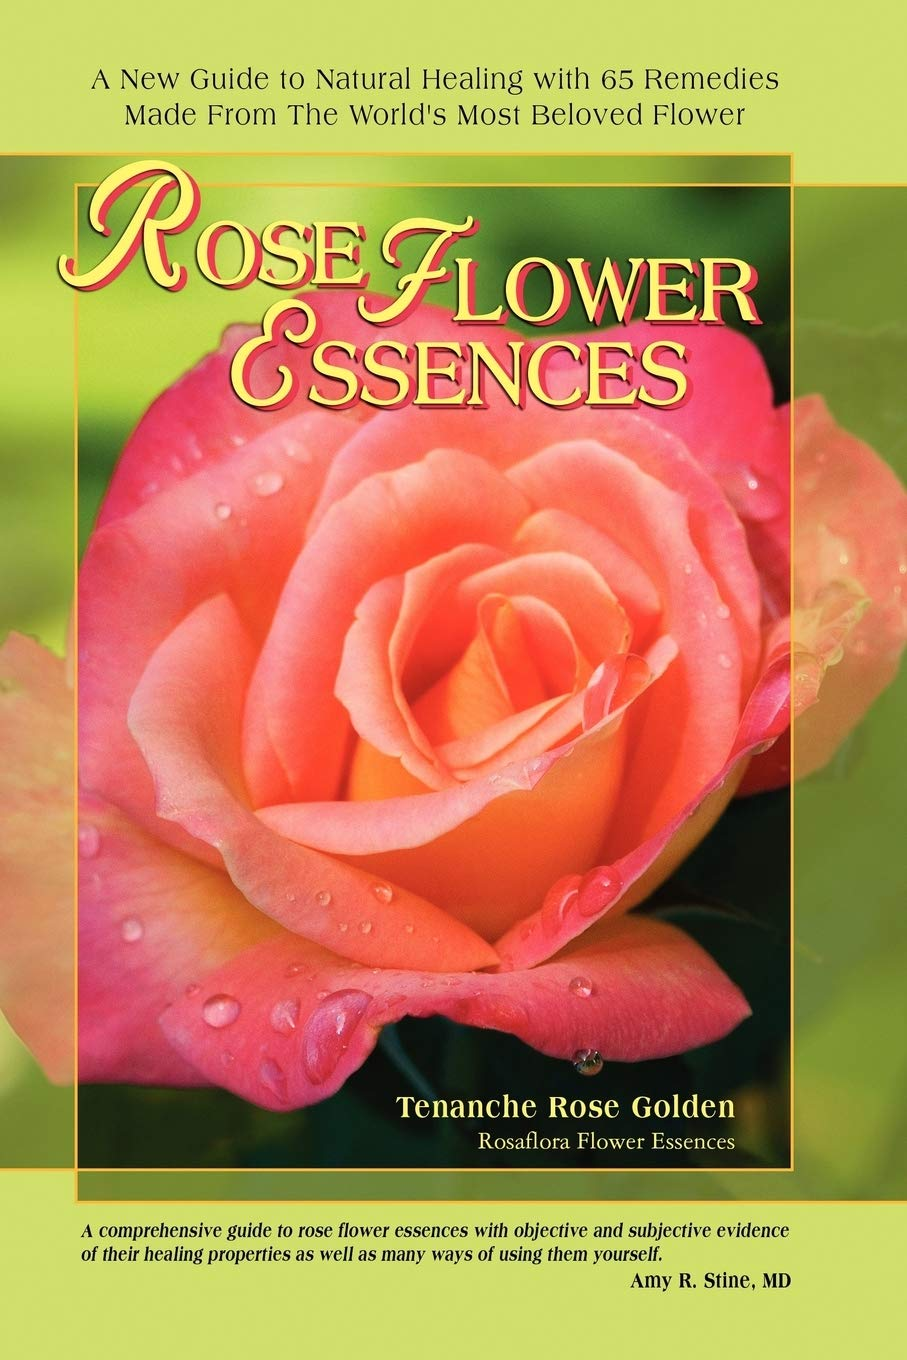 Rose Flower Essences A New Guide To Natural Healing With 65 Remedies Made From The World S Most Beloved Flower Golden Tenanche Rose 9781411660564 Amazon Com Books